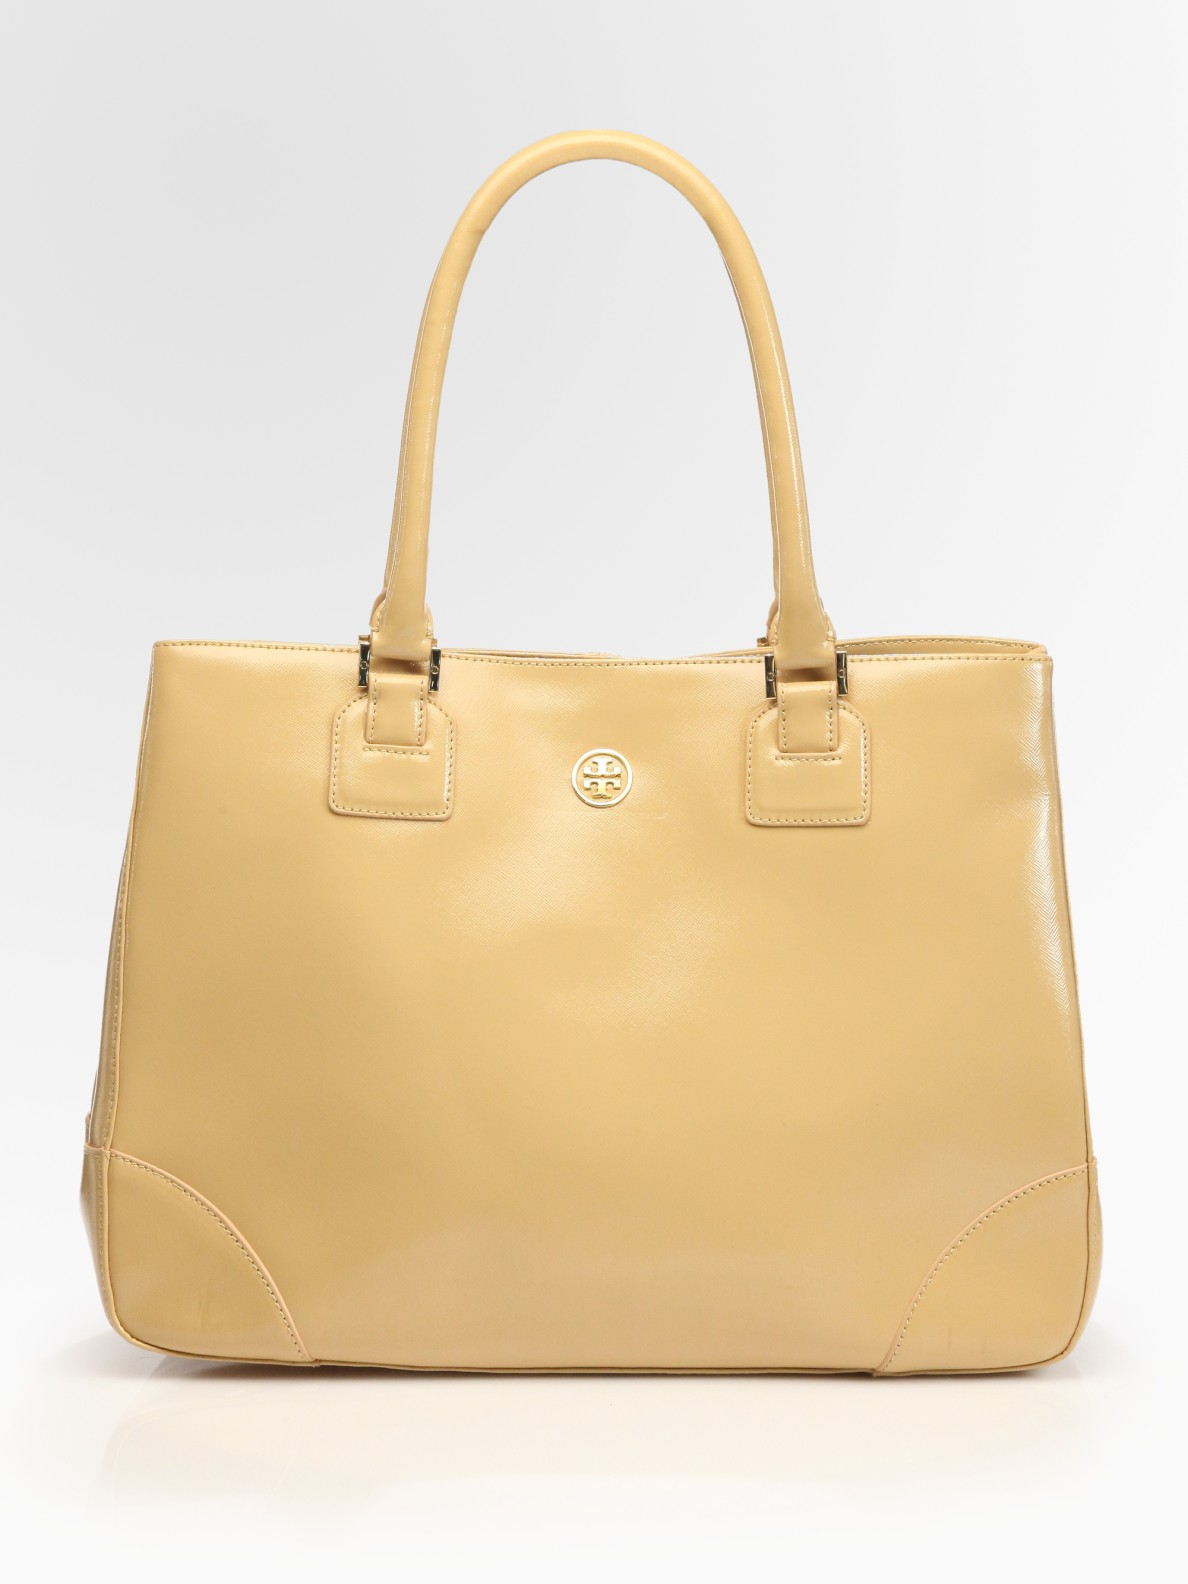 7452f4ab432c Lyst - Tory Burch Robinson East-to-west Tote Bag in Natural